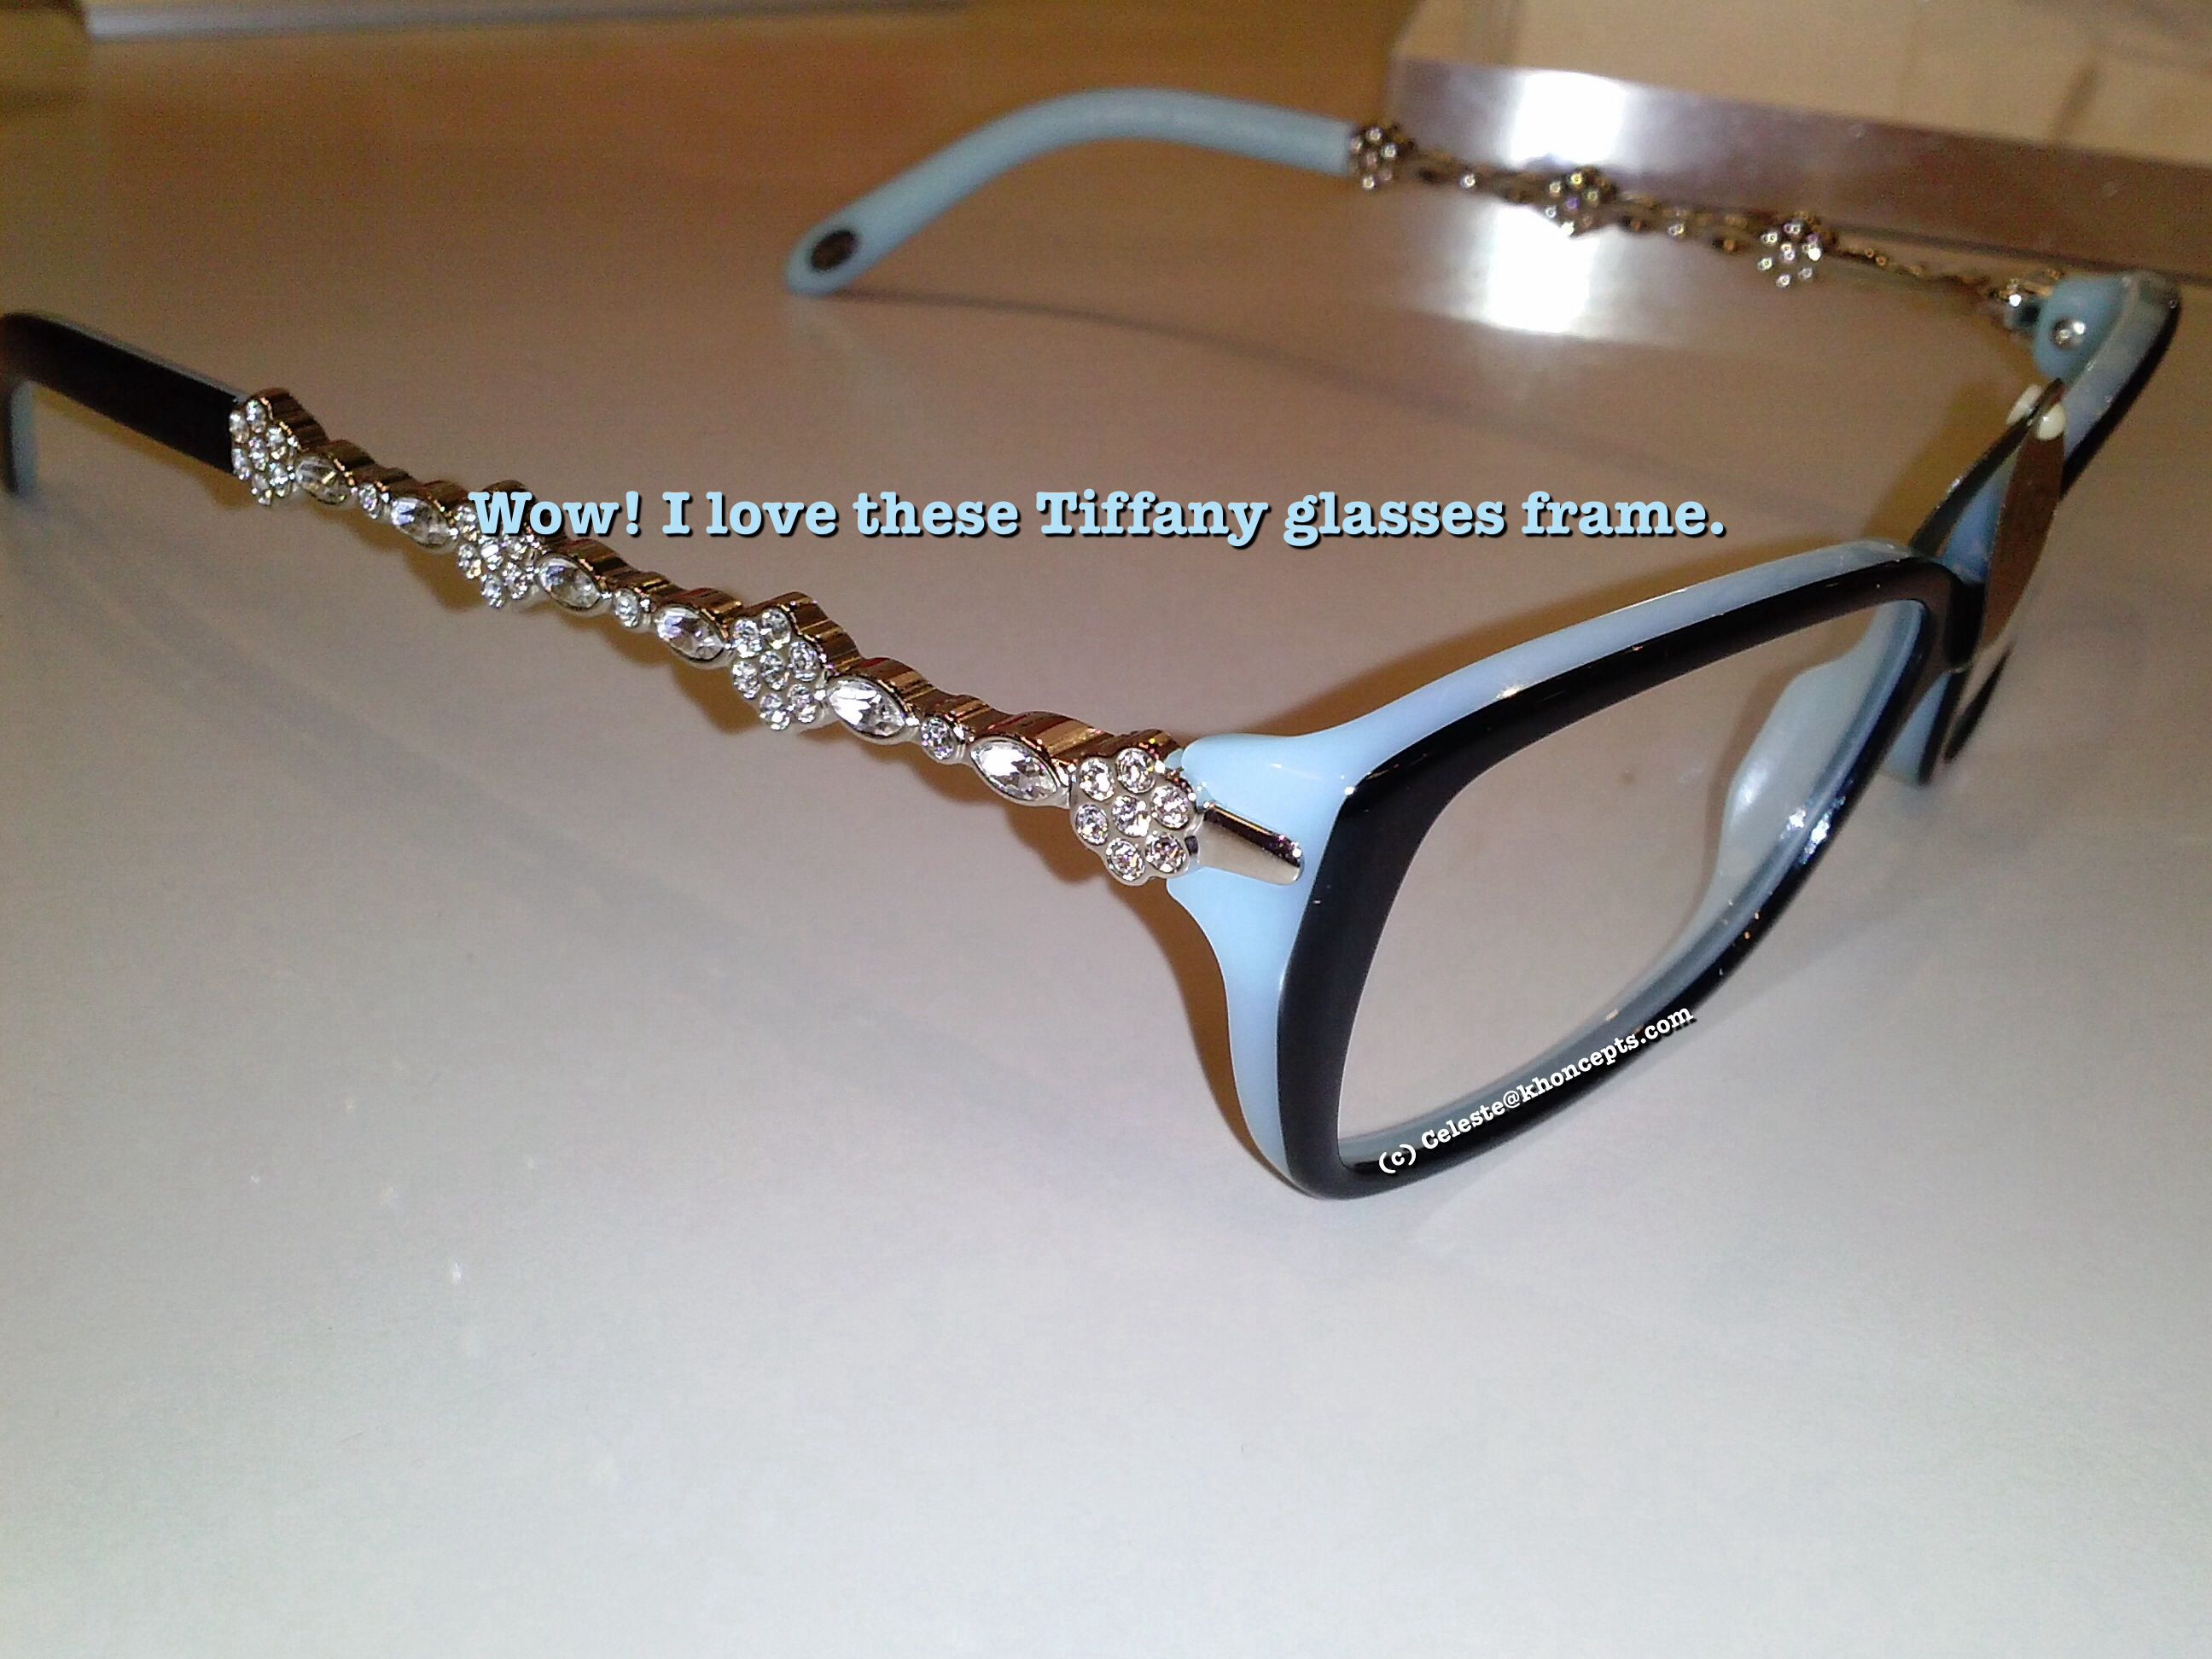 2975570cd6c Love these bling  Tiffany glasses frames spotted at my eye doctor s office.  Will visit Tiffany and Co online to see what they have.